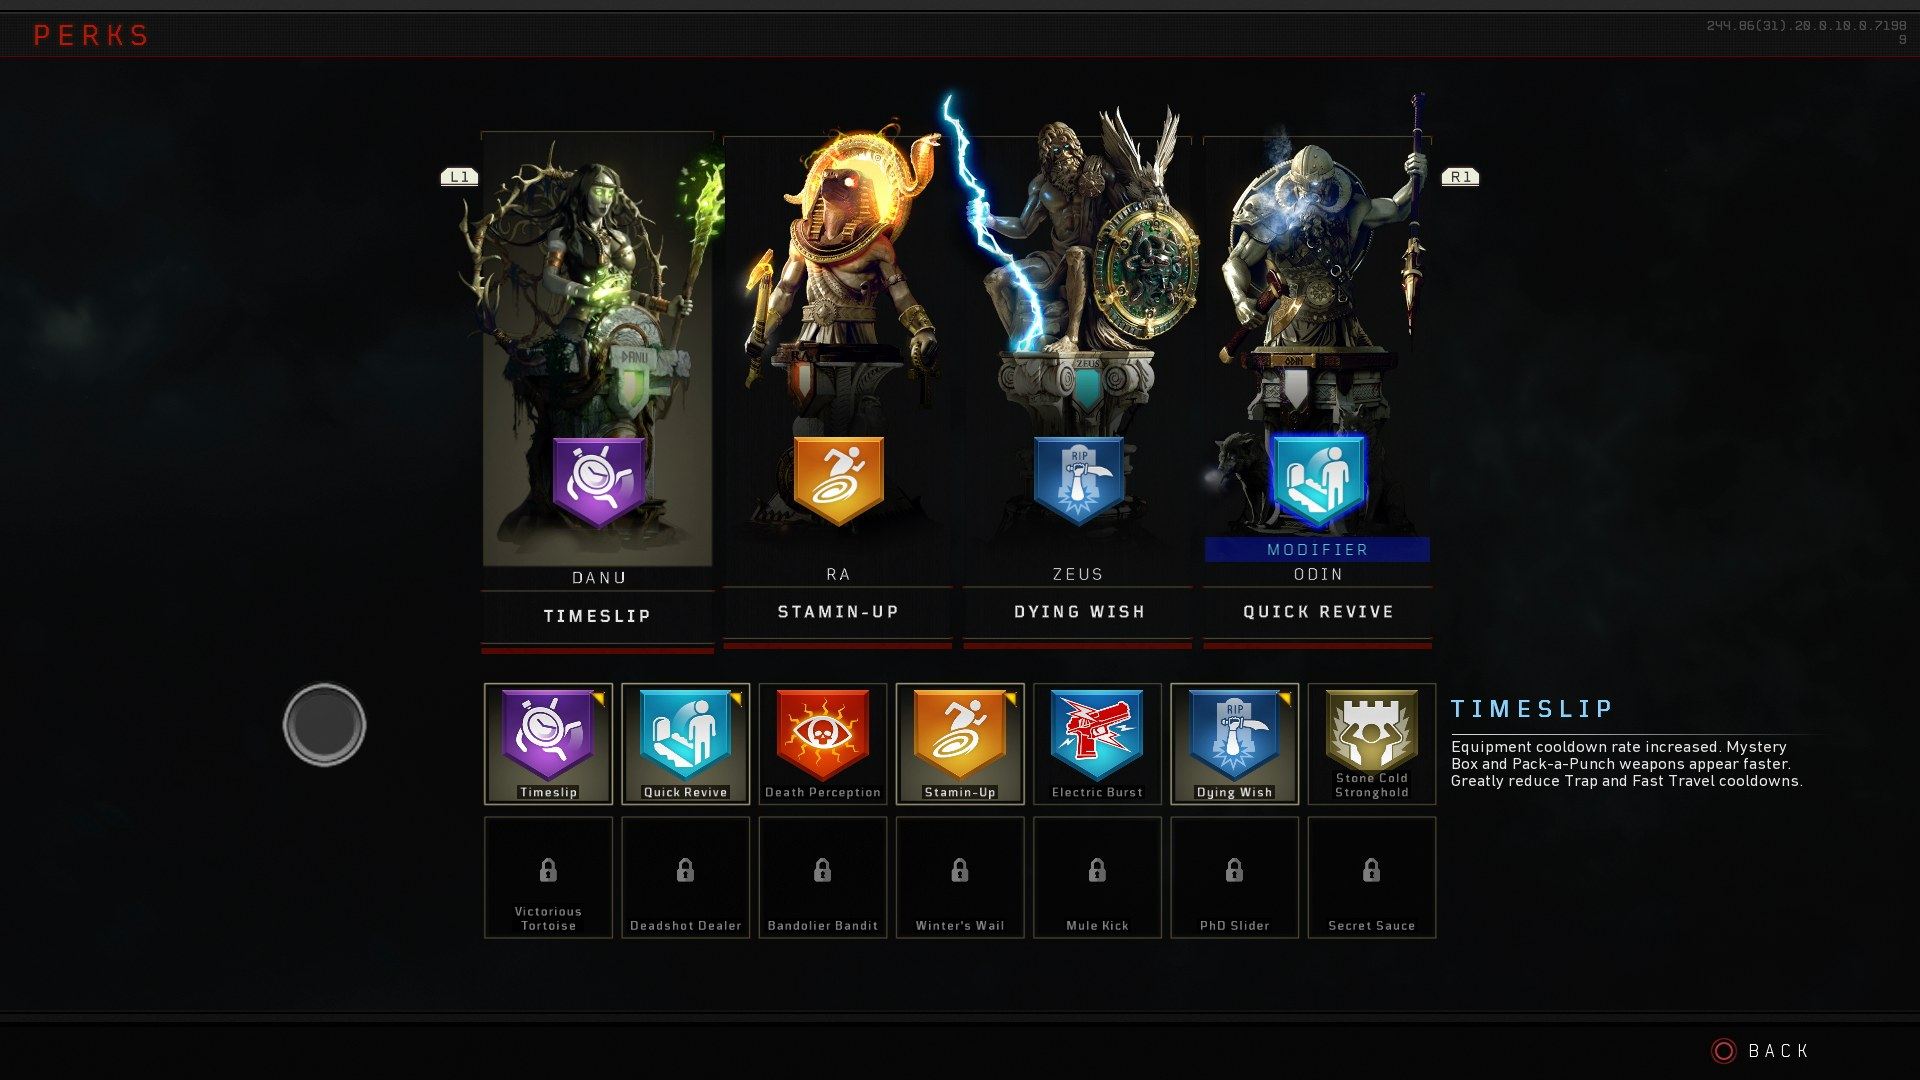 Black Ops 4 Zombies Perks - Complete Perks Guide, Best Zombies Perks on